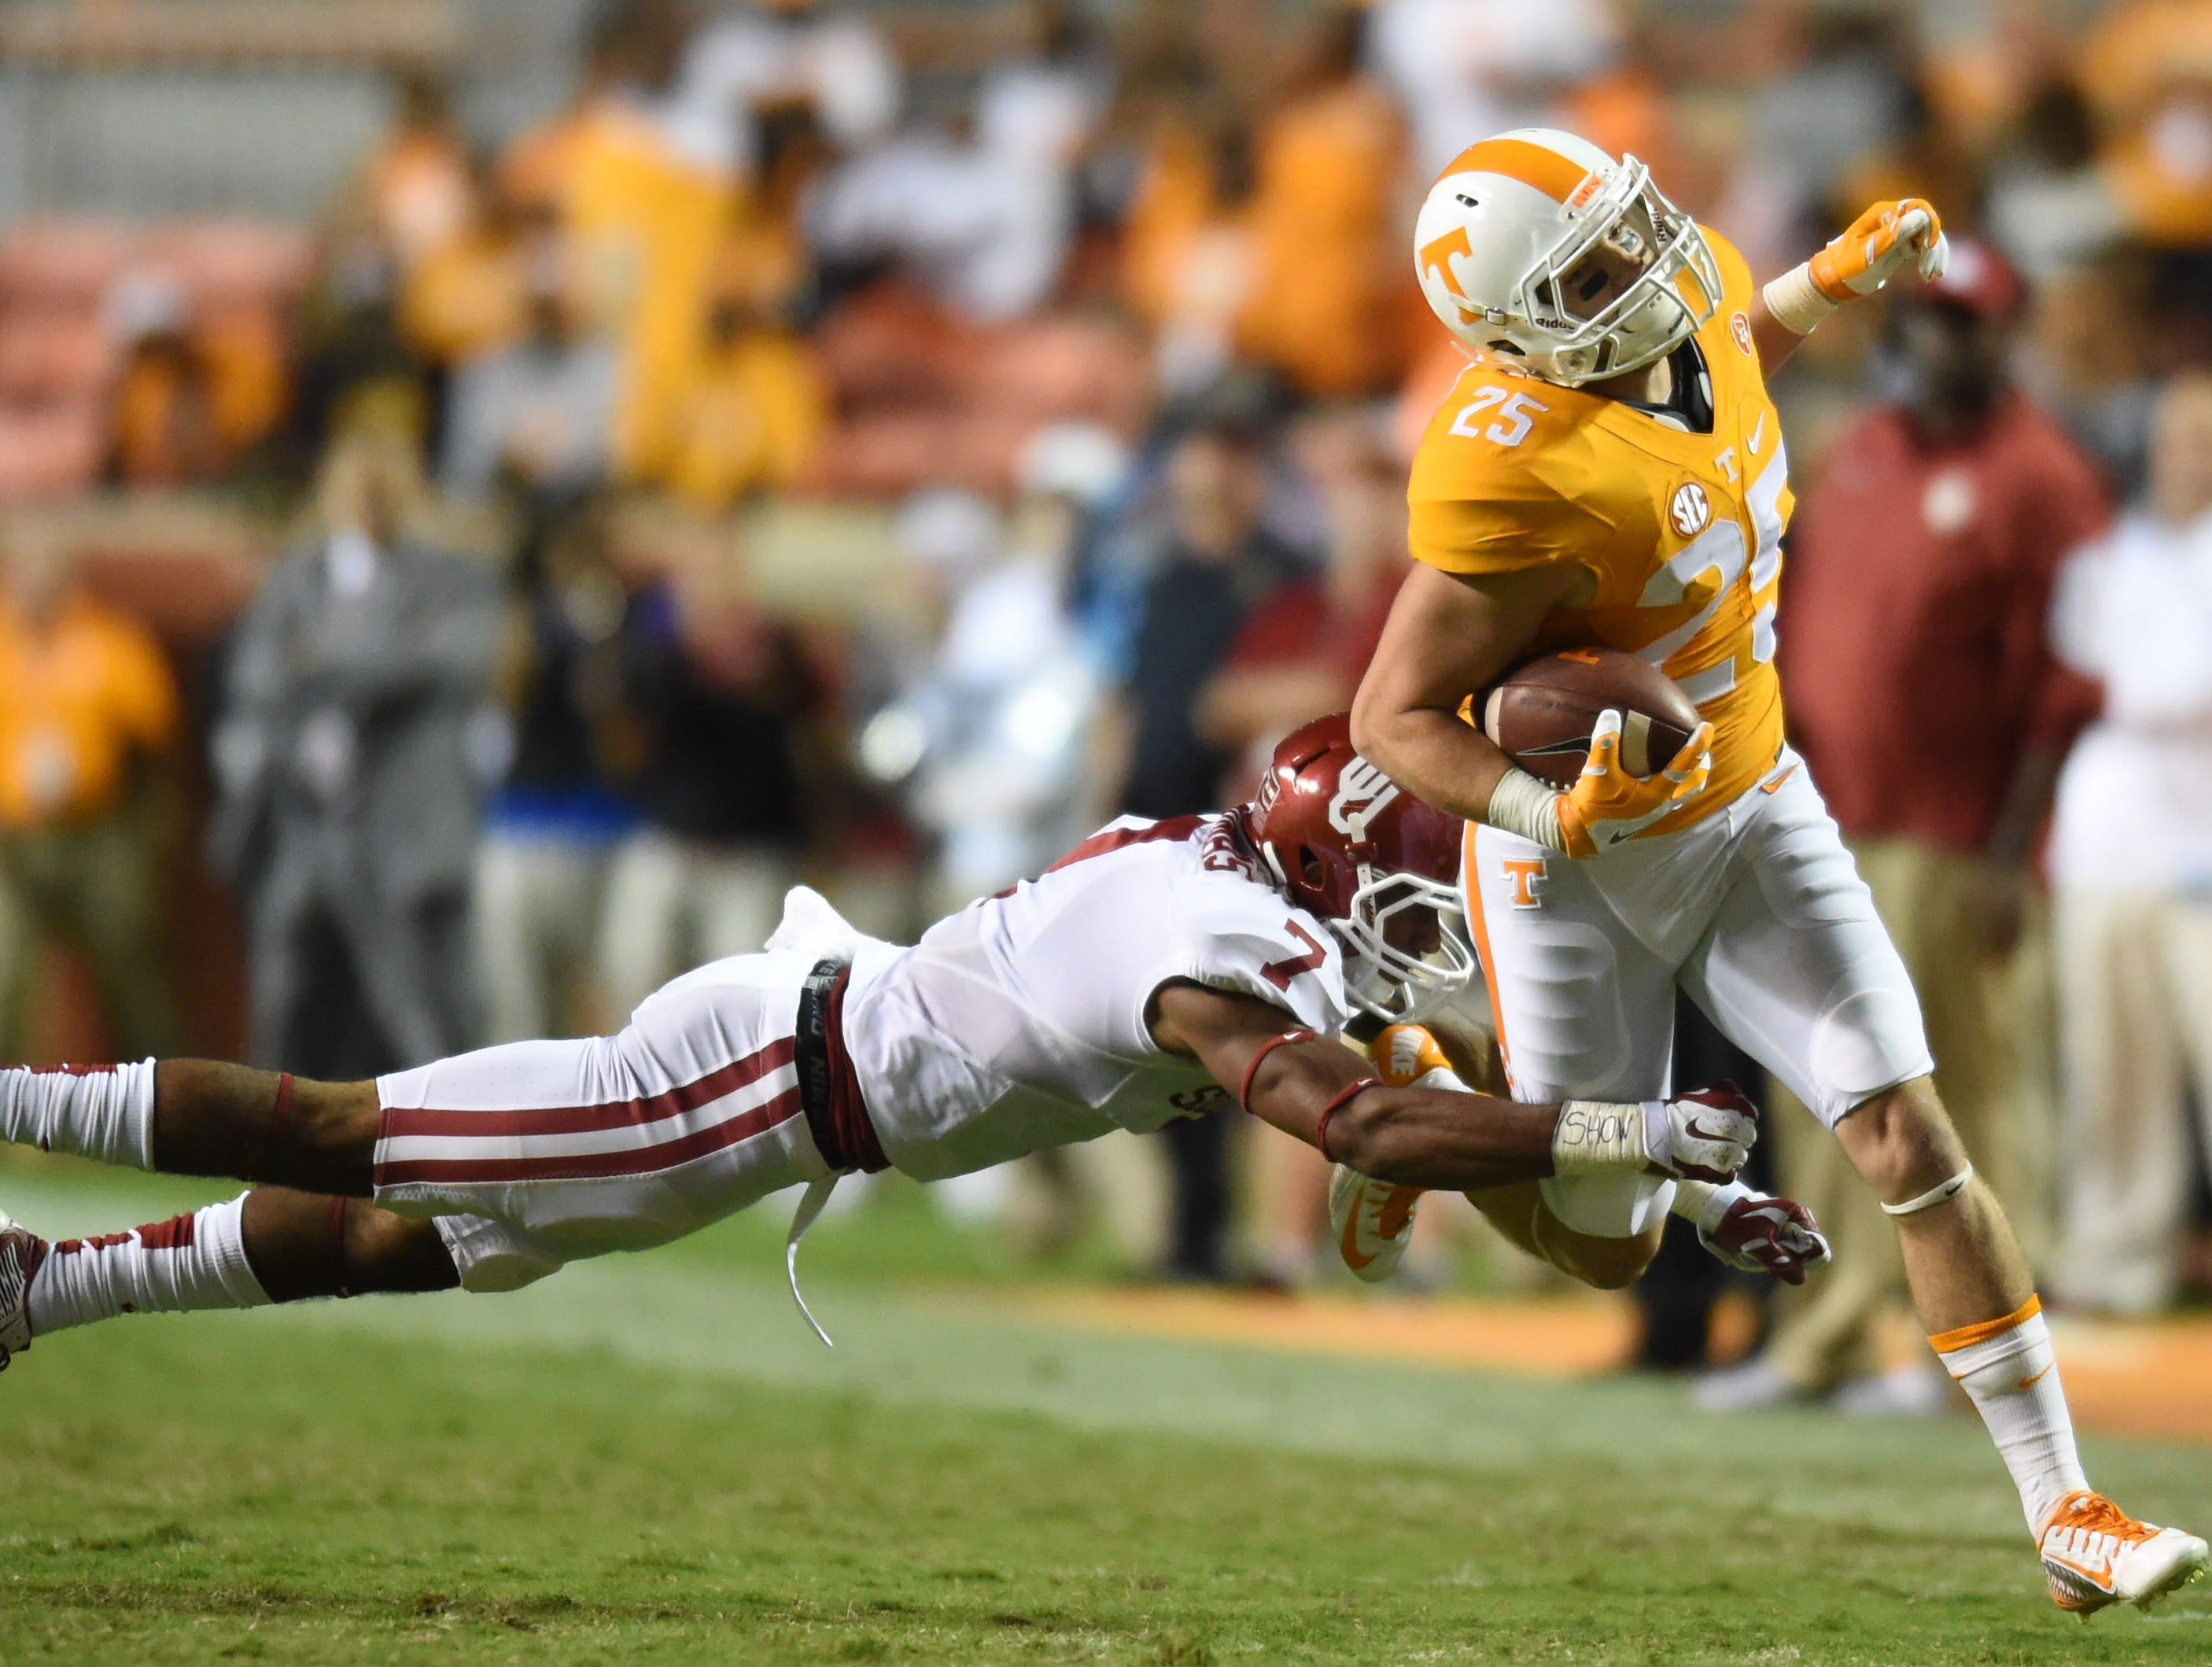 Oklahoma cornerback Jordan Thomas (7) tries to stop Tennessee wide receiver Josh Smith (25) during the second half at Neyland Stadium on Saturday, Sept. 12, 2015 in Knoxville, Tenn.